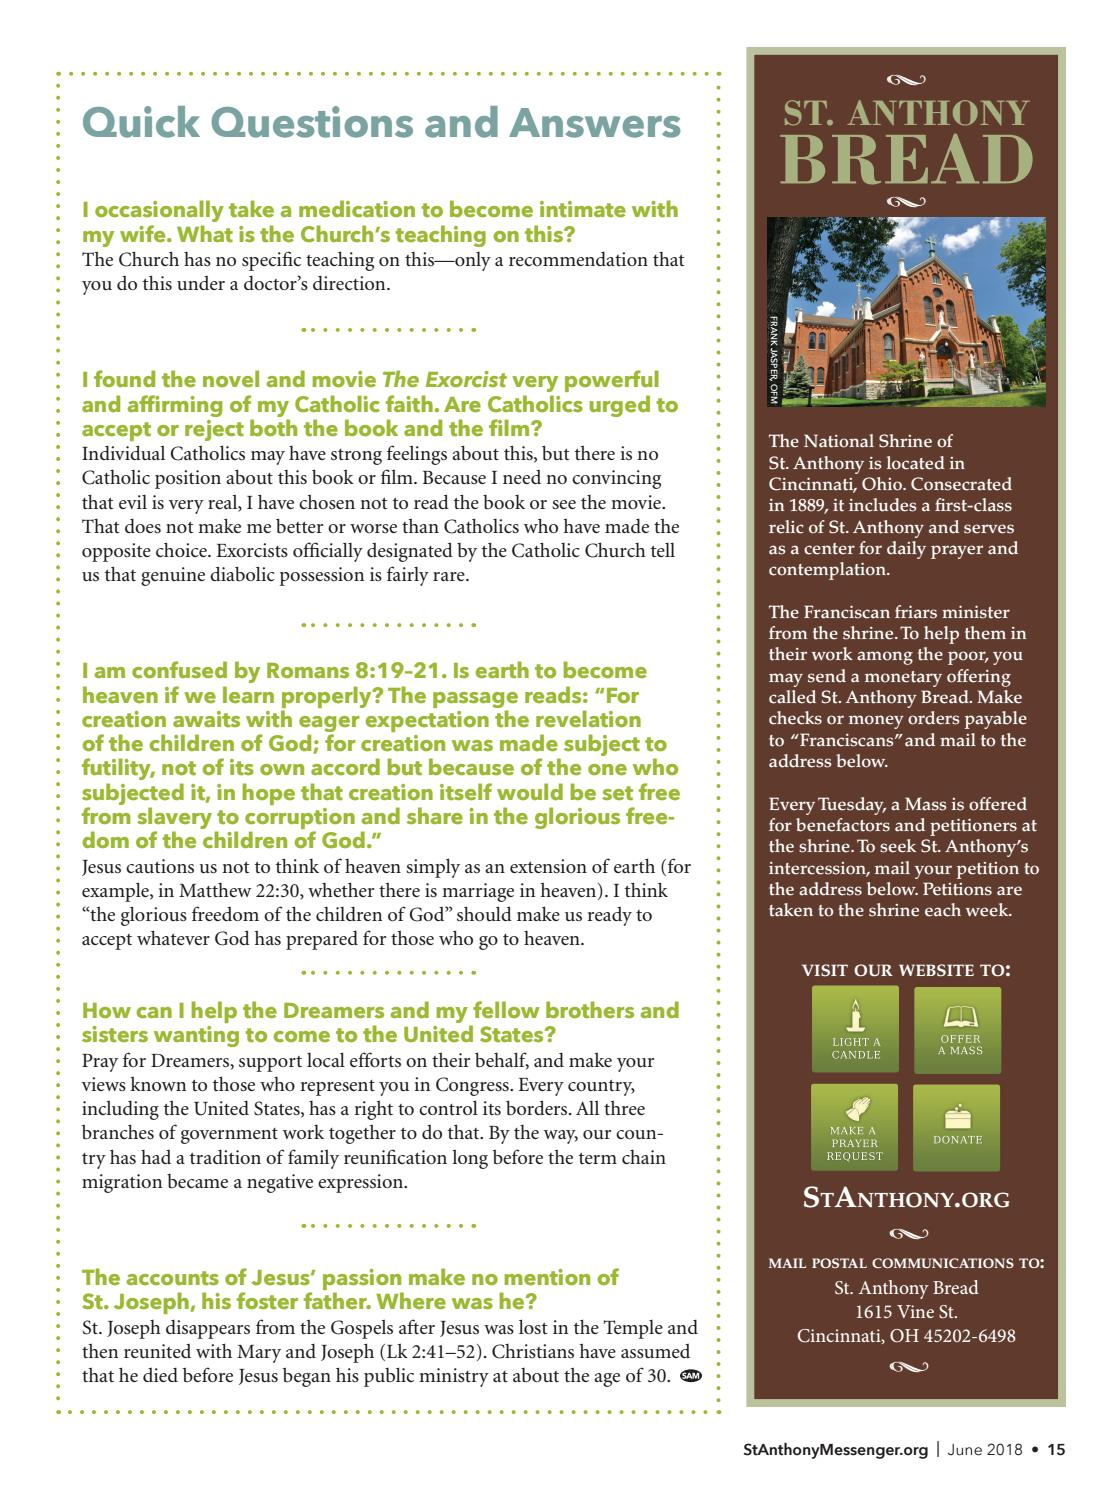 St  Anthony Messenger June 2018 by Franciscan Media - issuu